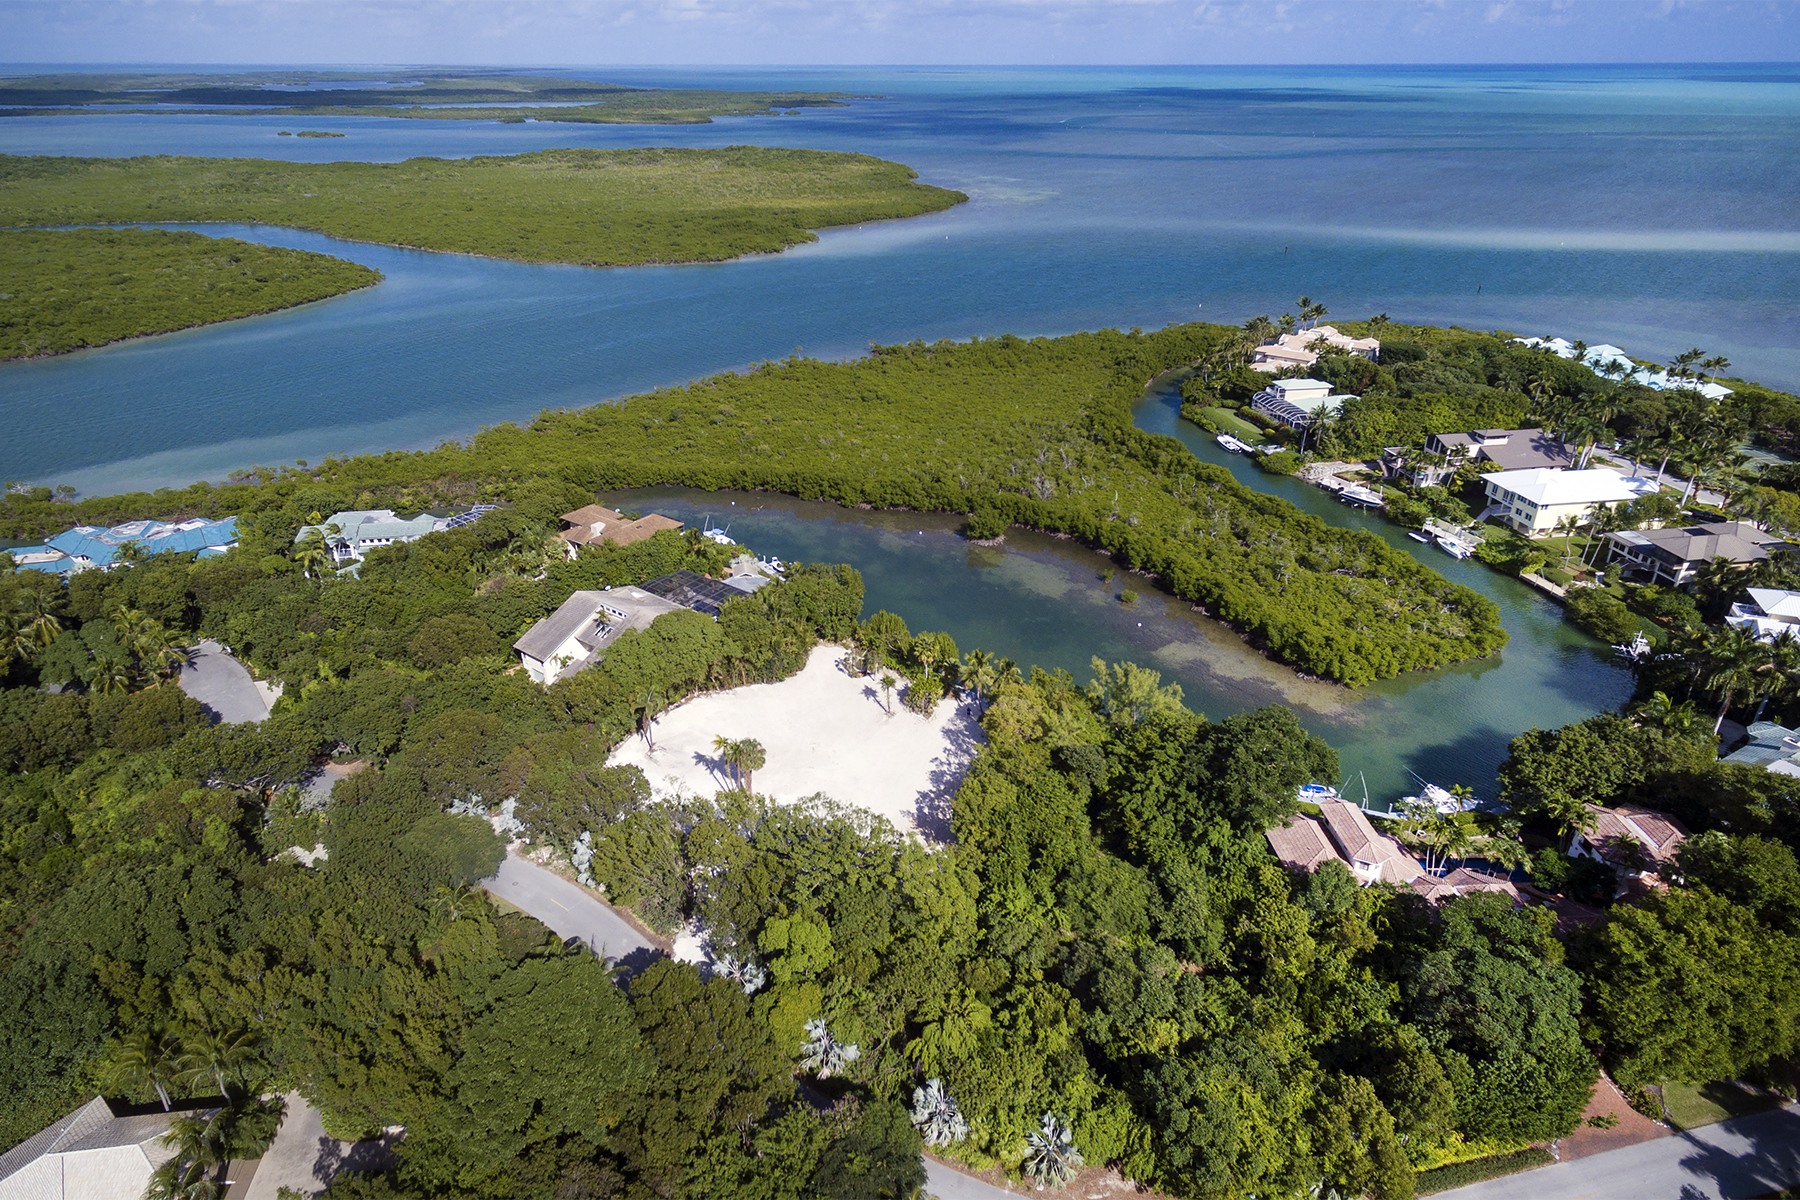 Land for Sale at Expansive Location to Build Your Dream Home at Ocean Reef 40-42 Cardinal Lane Ocean Reef Community, Key Largo, Florida, 33037 United States